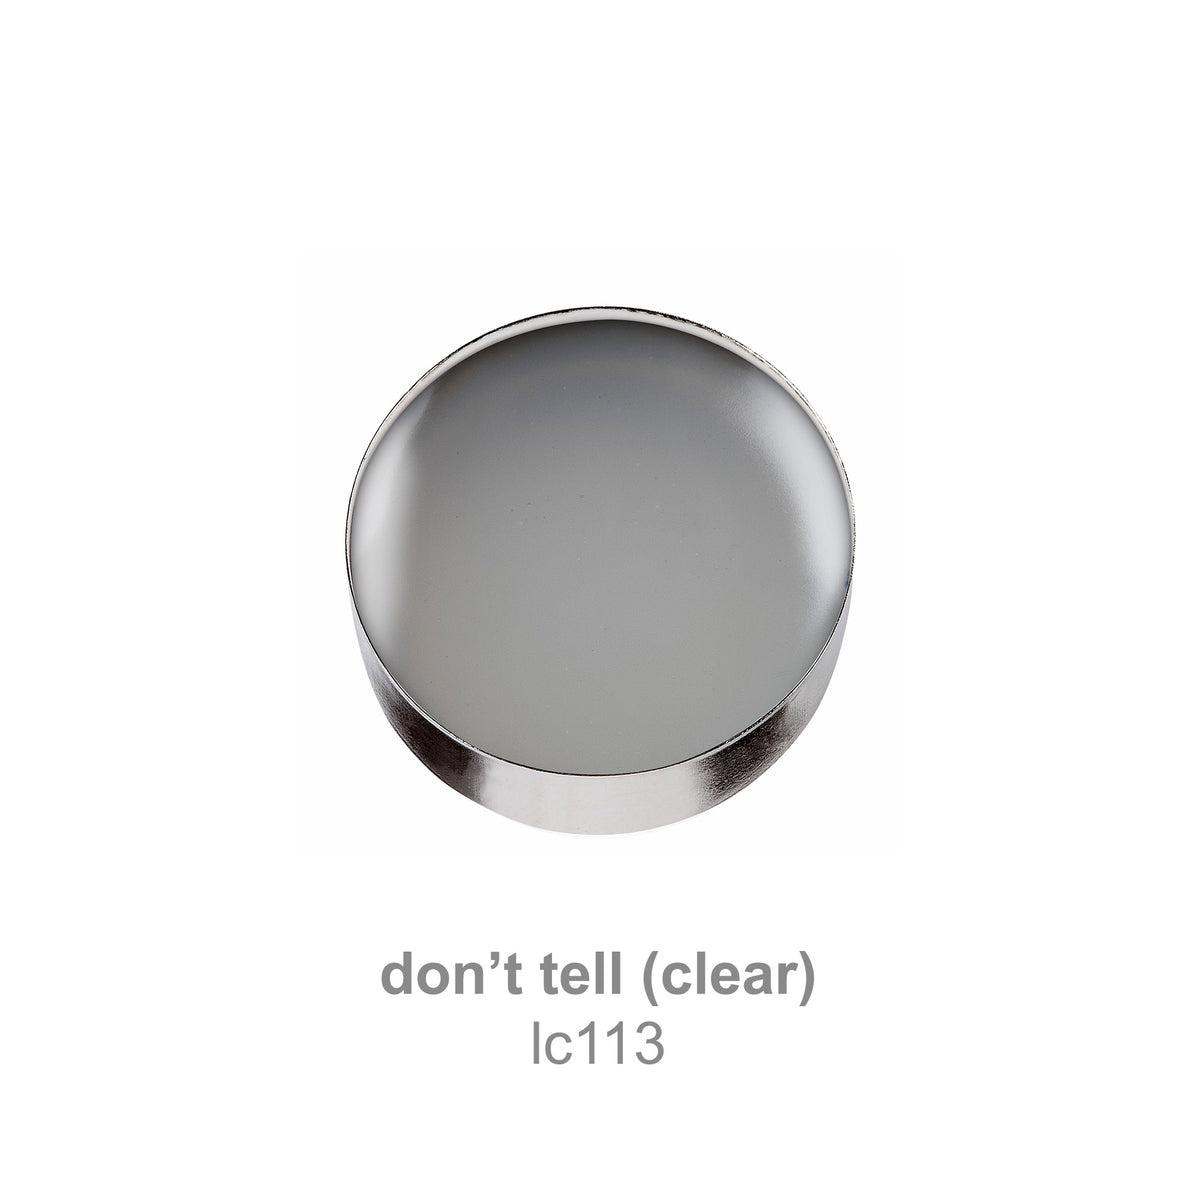 don't tell (clear) (lc113)